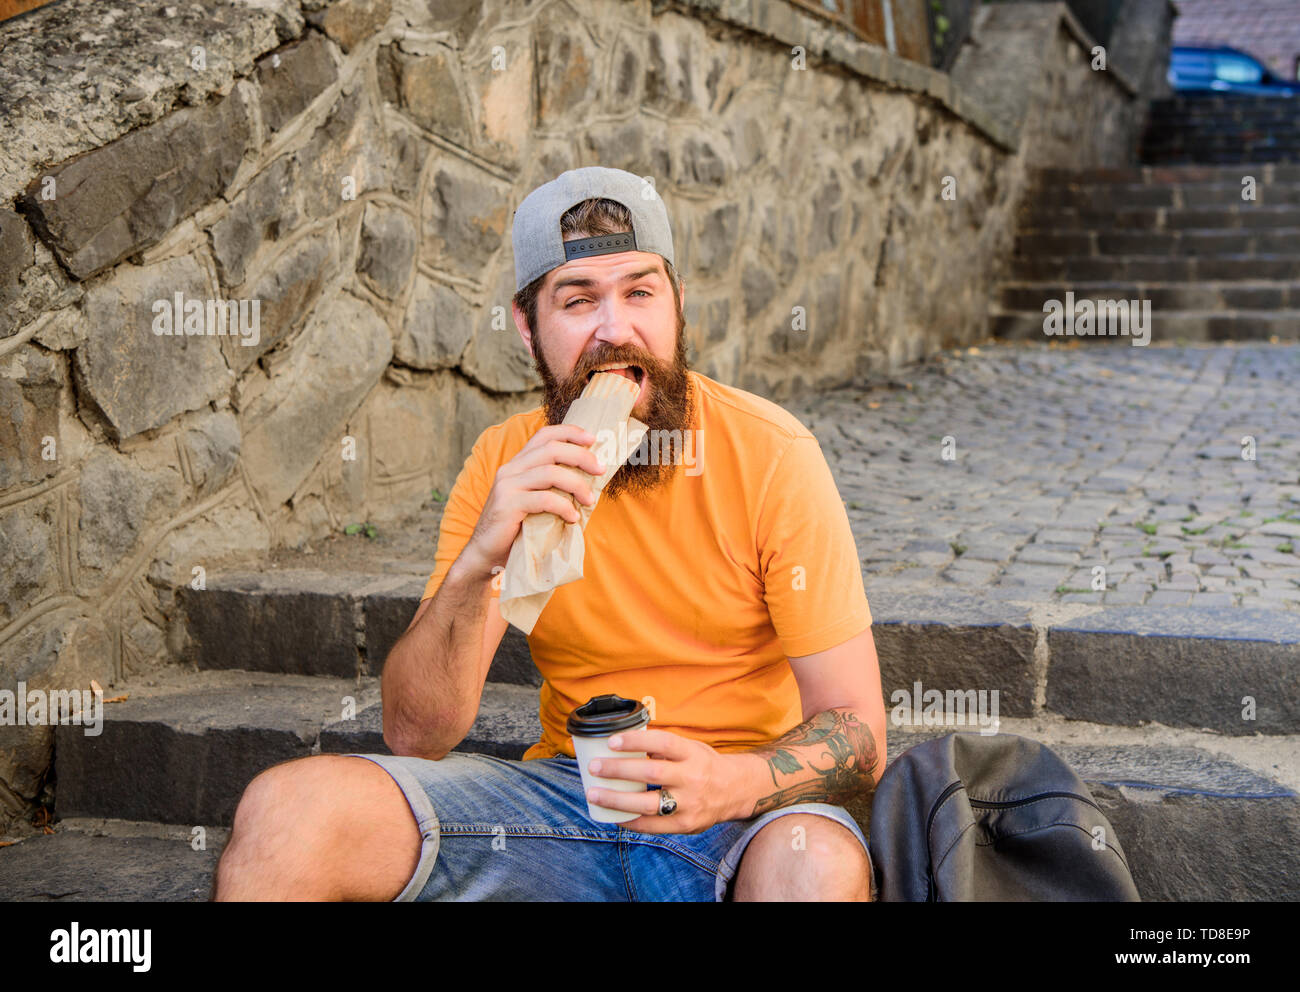 Street food so good. Urban lifestyle nutrition. Carefree hipster eat junk food while sit on stairs. Hungry man snack. Junk food. Guy eating hot dog. Man bearded enjoy quick snack and drink paper cup. - Stock Image